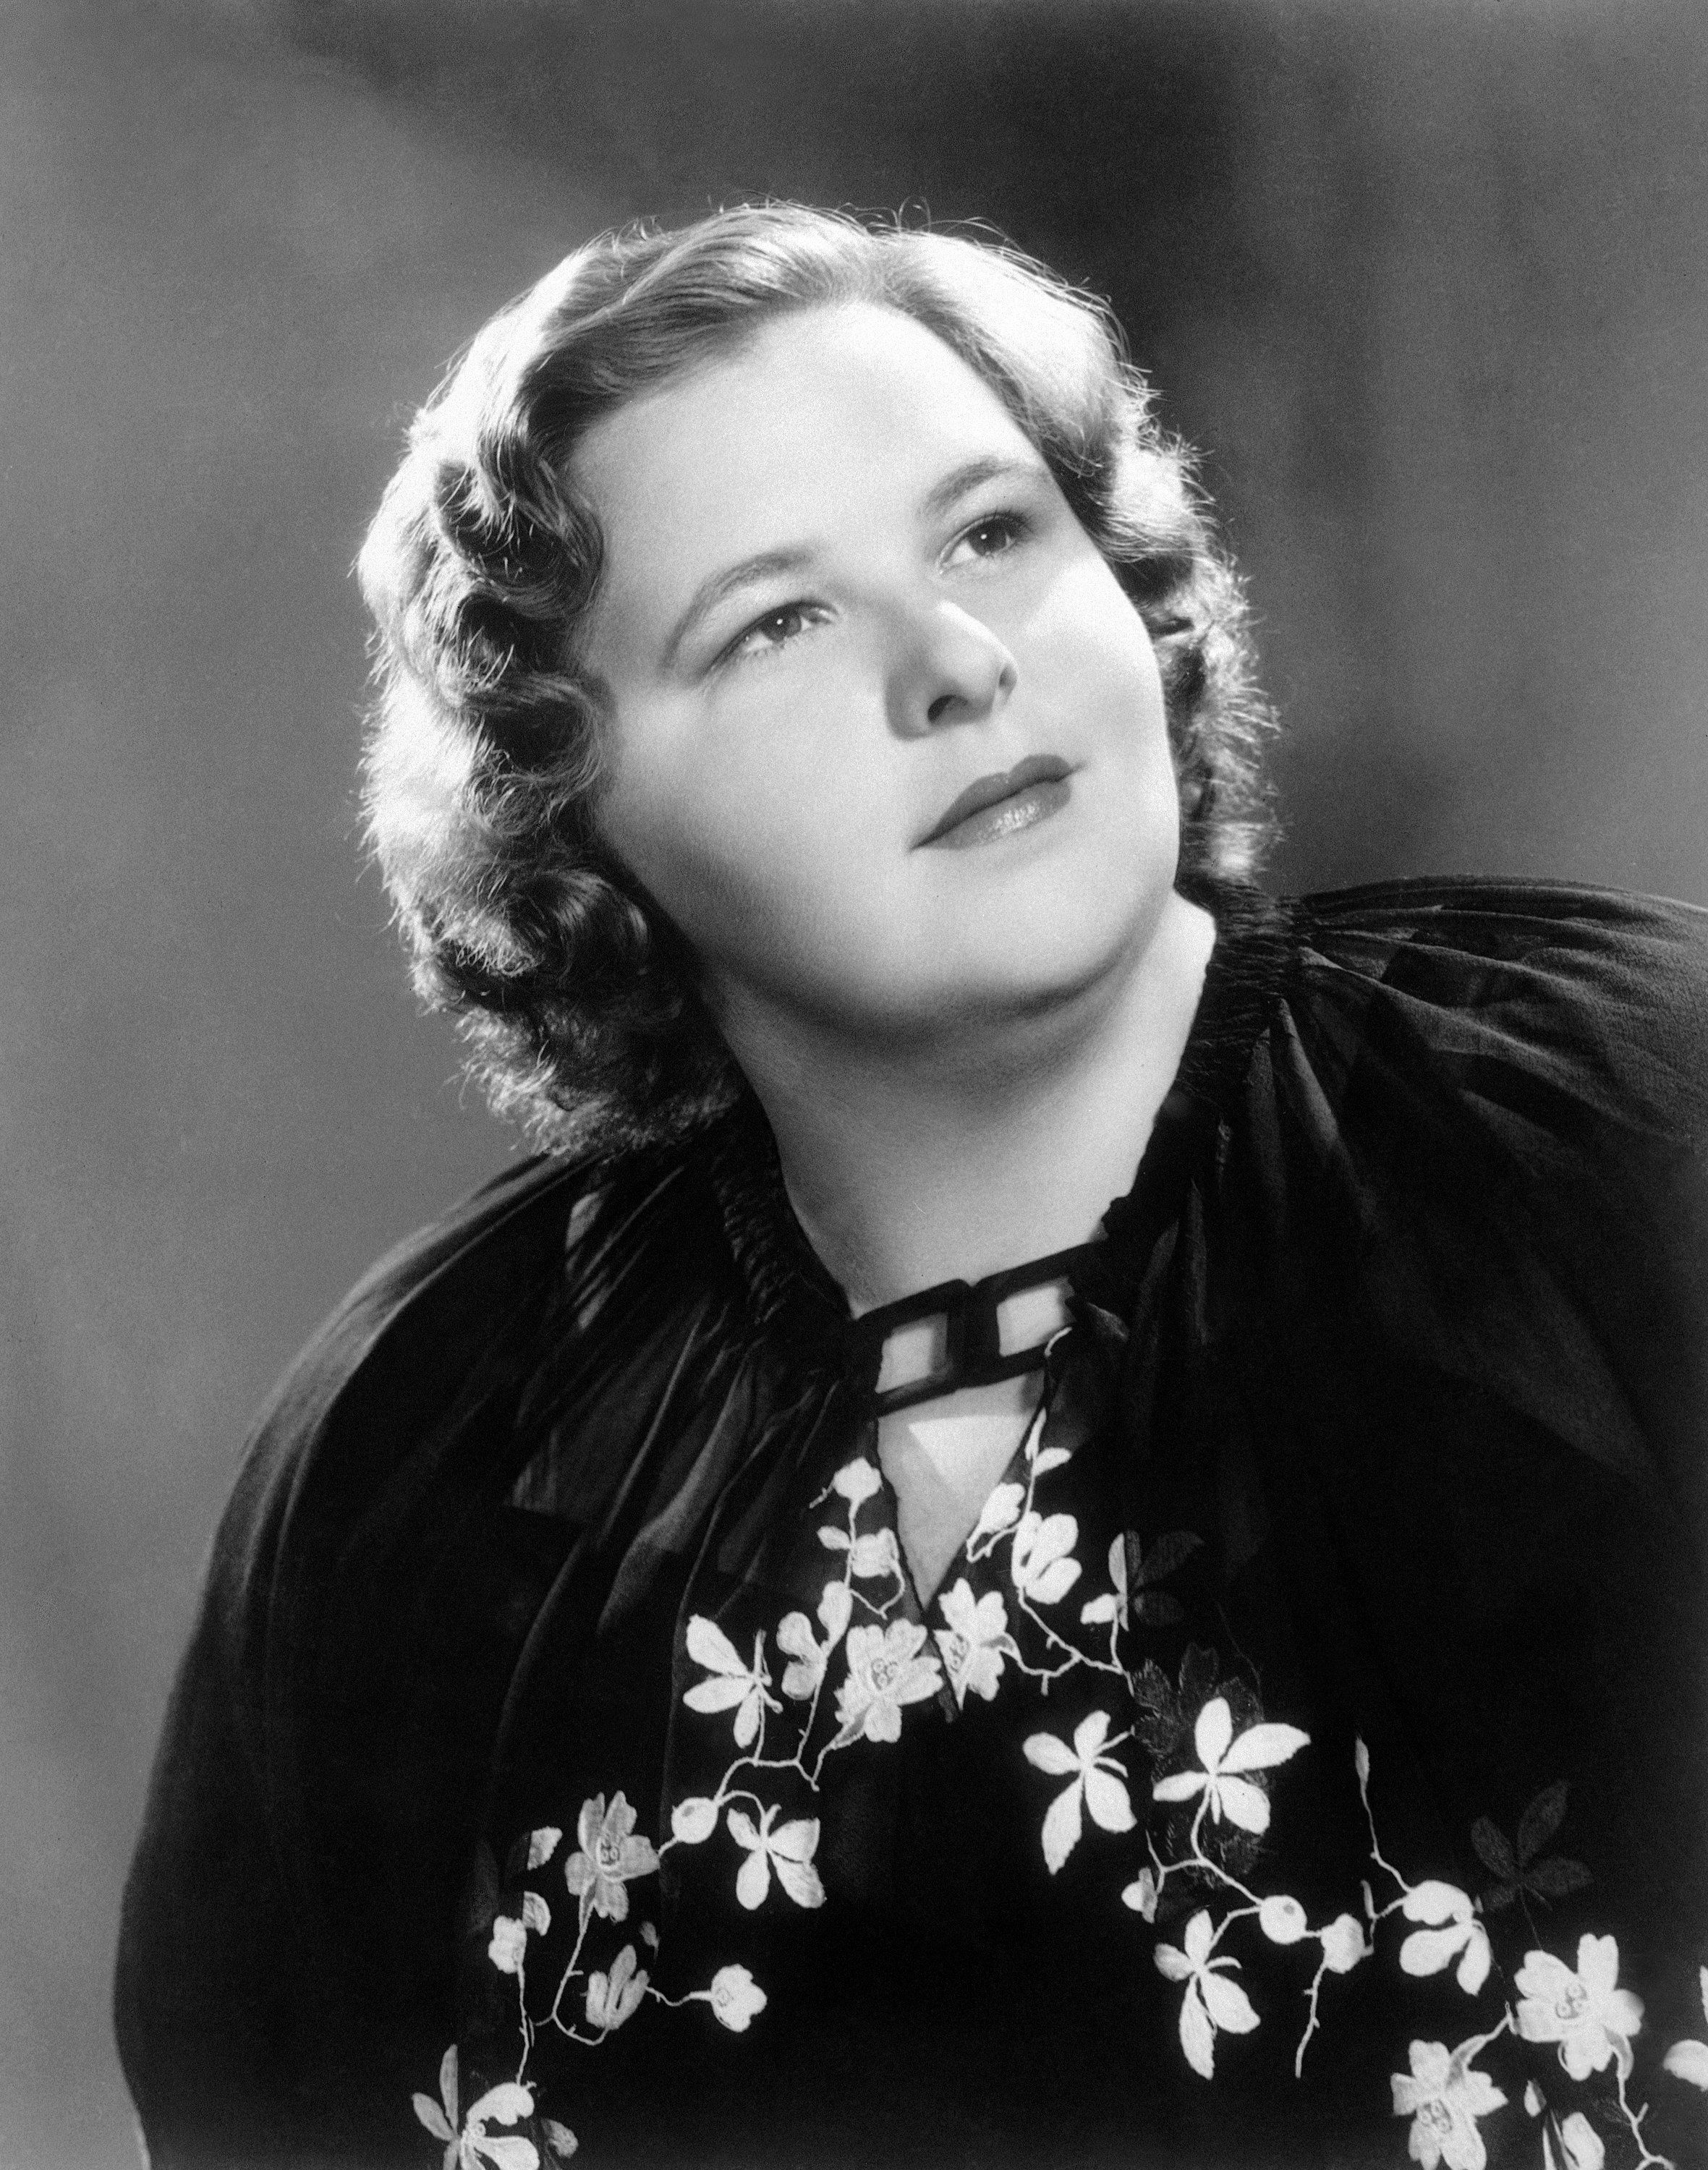 Yankees, Flyers Drop Kate Smith's 'God ...